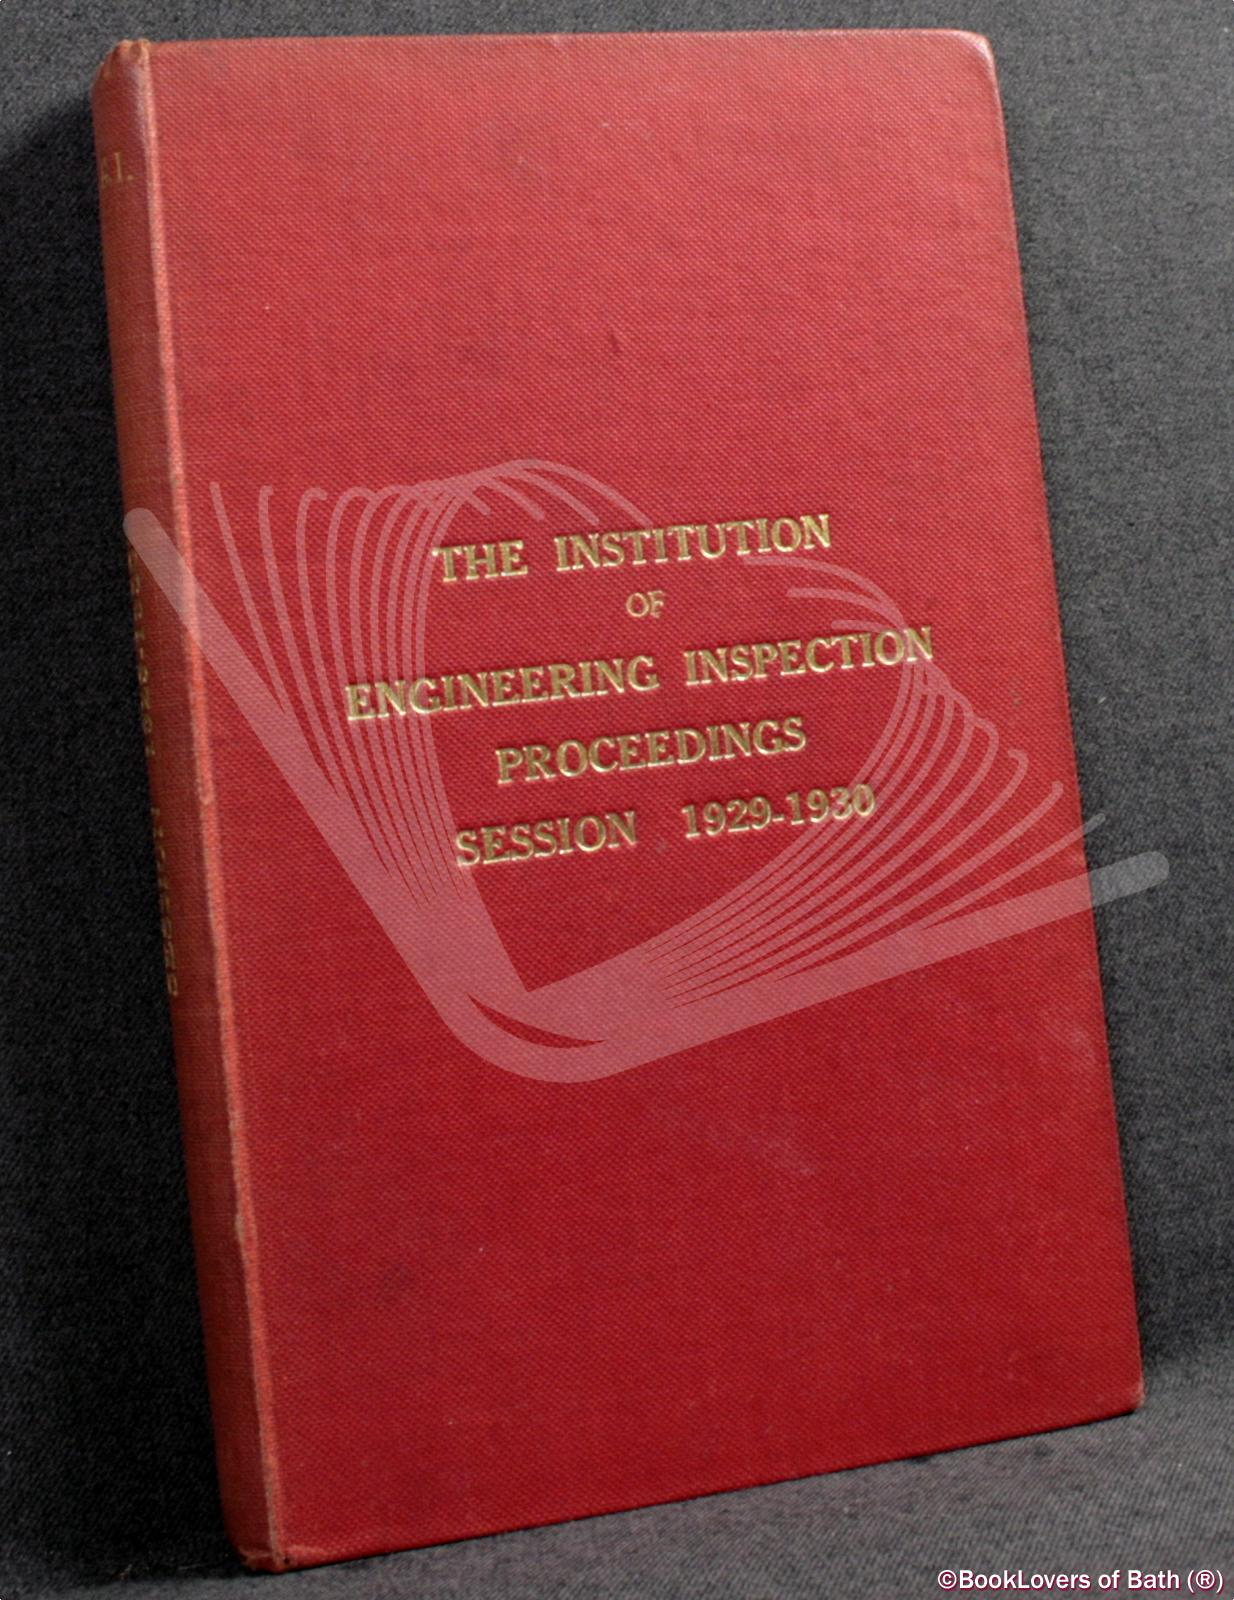 The Institute Of Engineering Inspection Proceedings Session 1929-1930 - Anon.